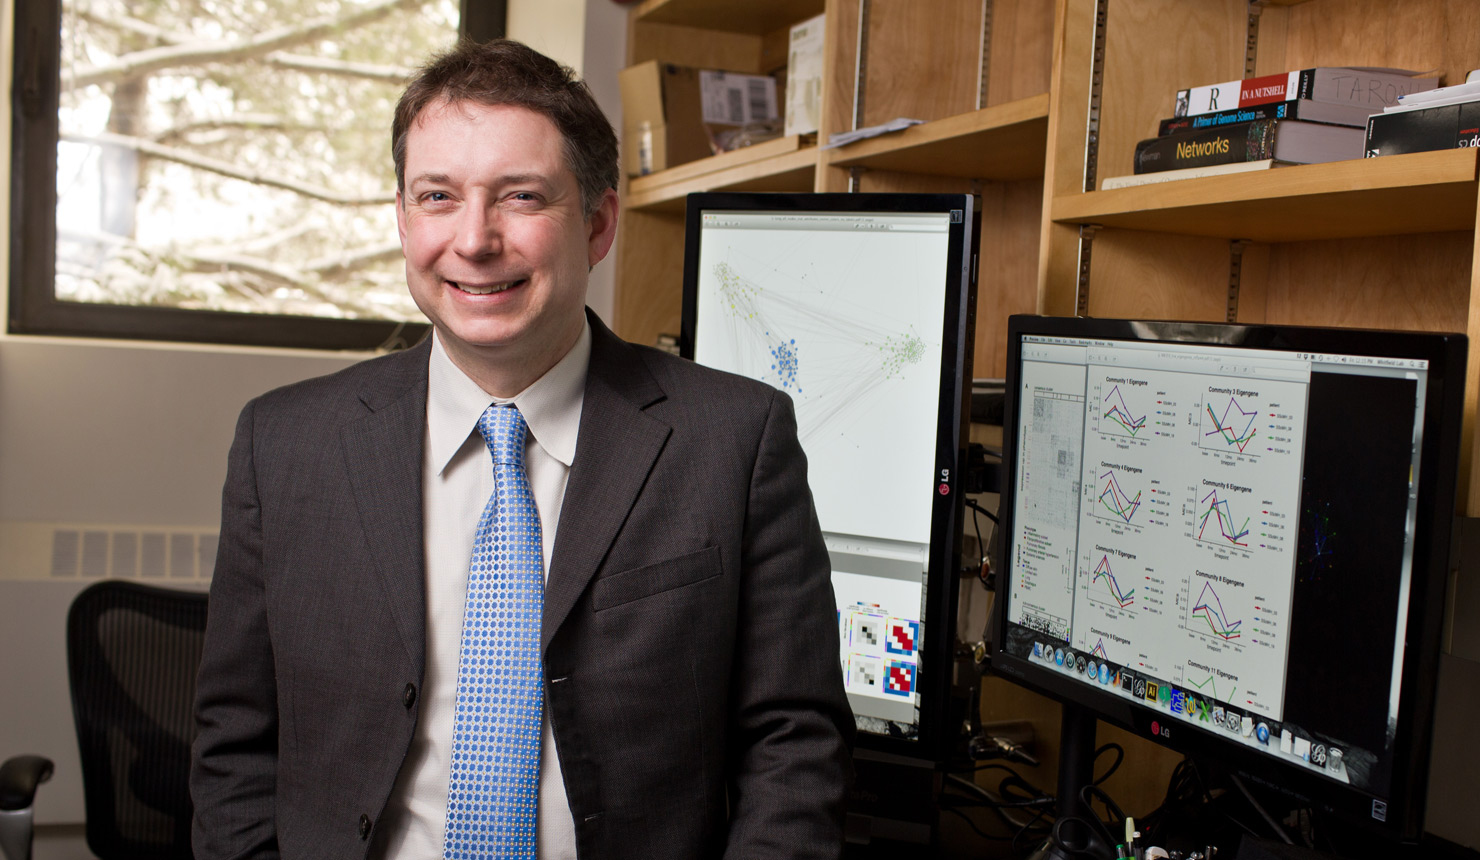 Michael Whitfield, PhD, a translational genetics researcher at Dartmouth's Geisel School of Medicine. Photo credit: Rob Strong.